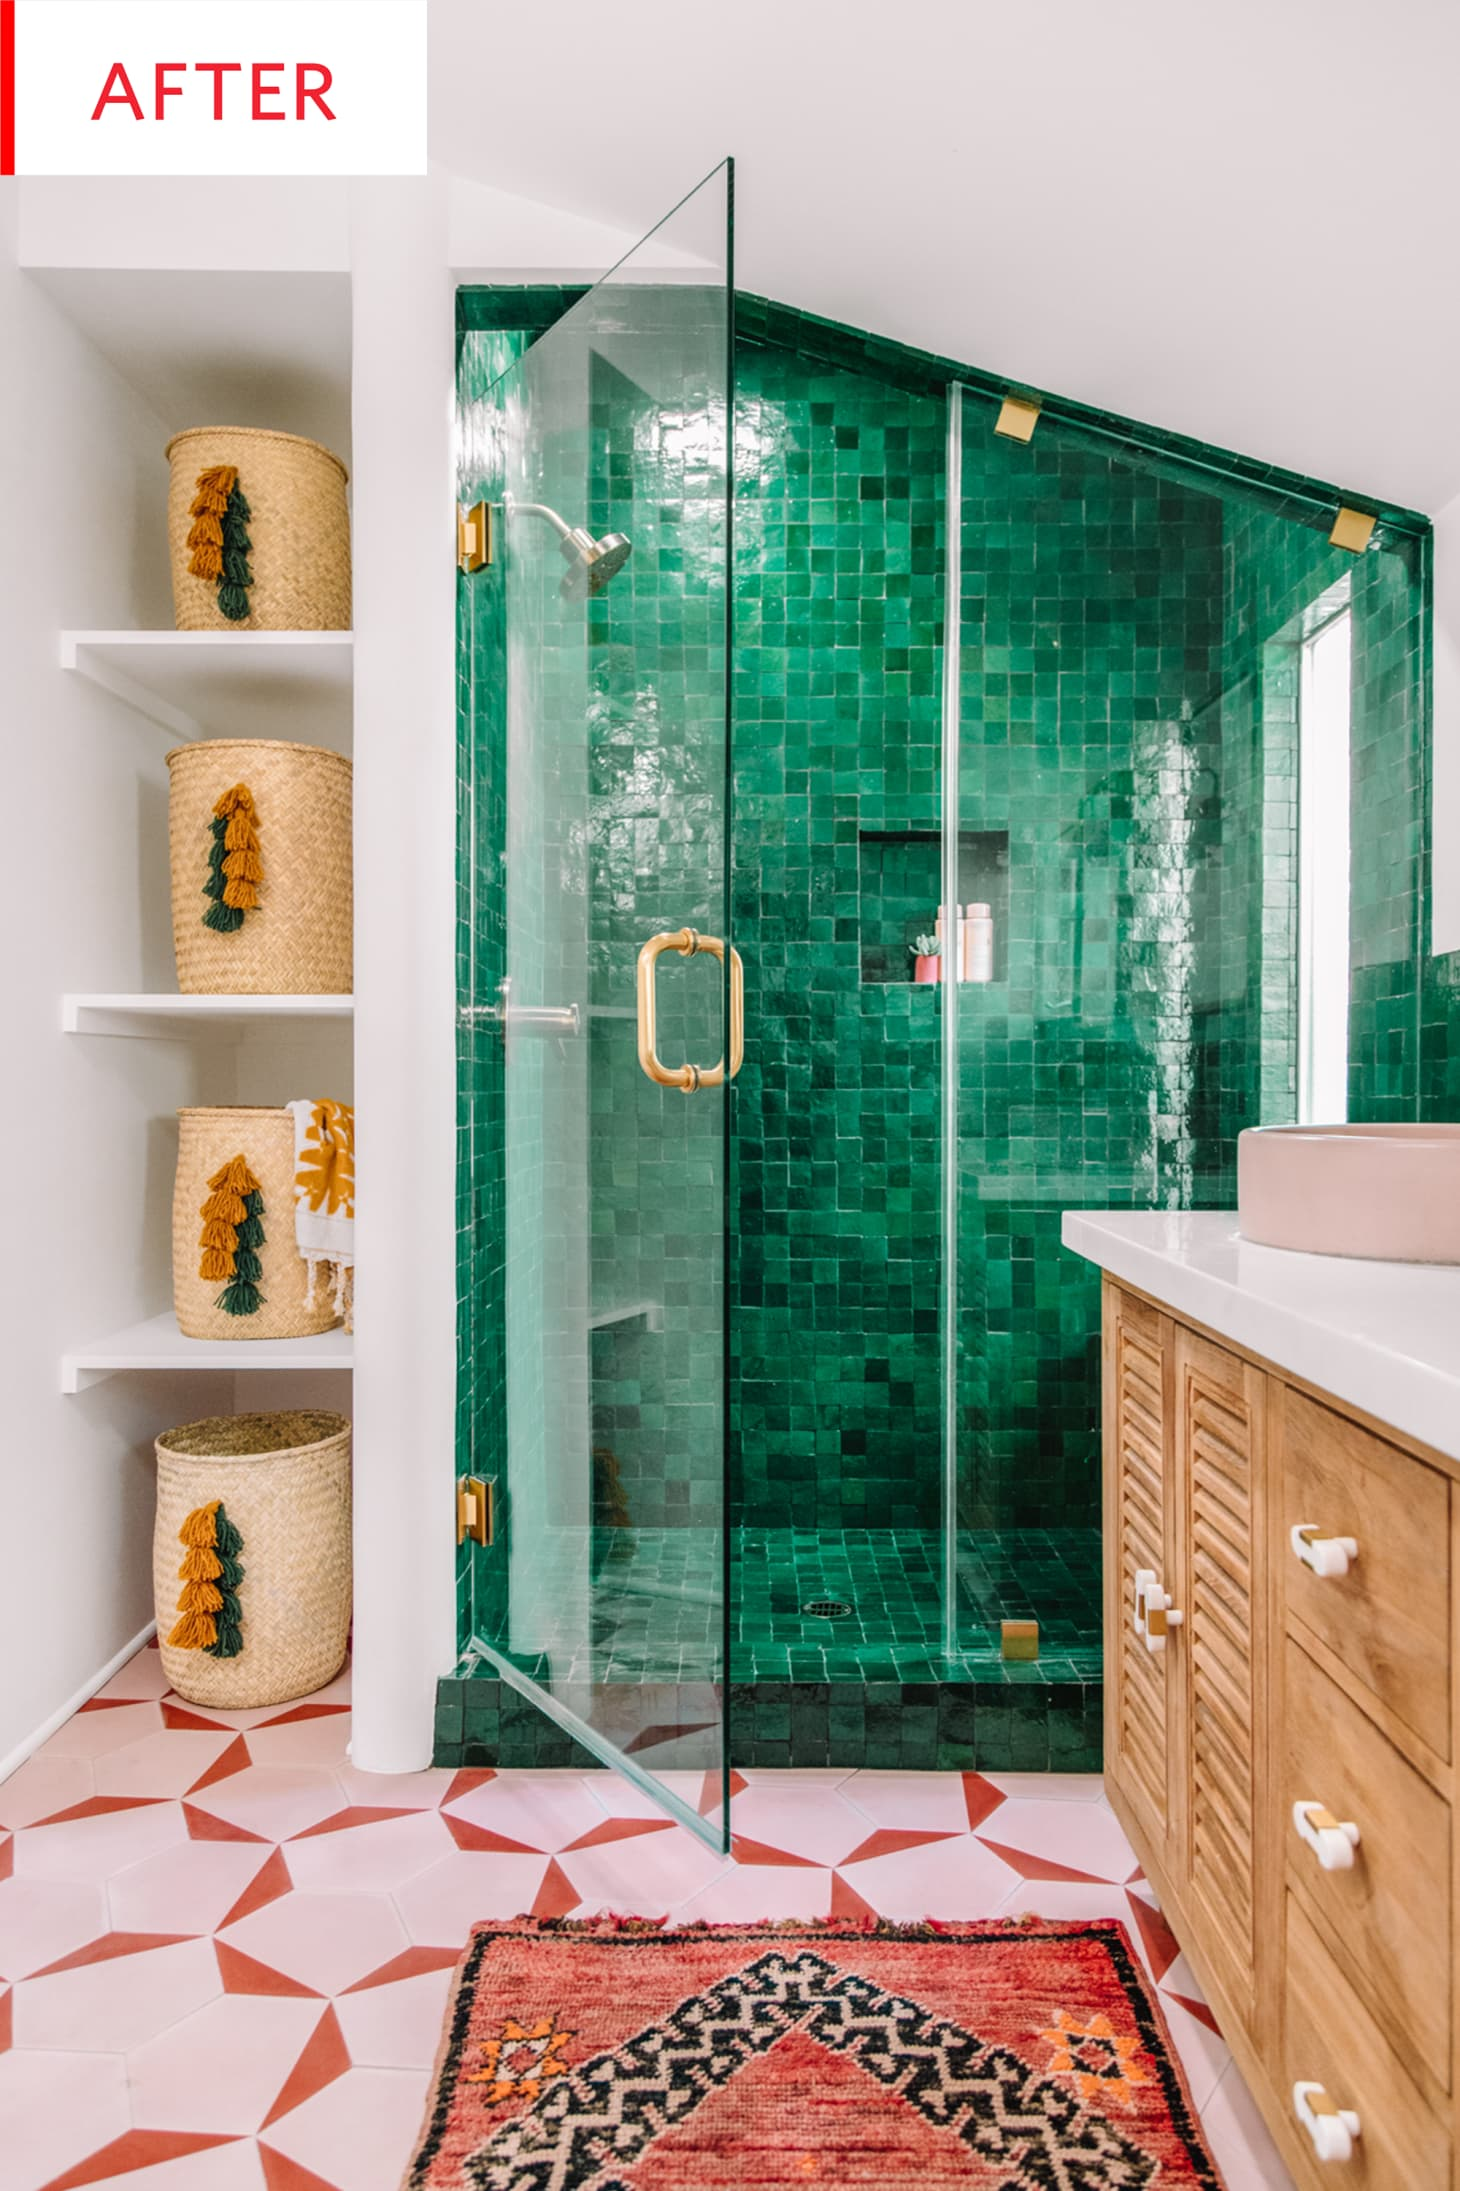 Bohemian Style Bathroom Remodel Before After Photos ...